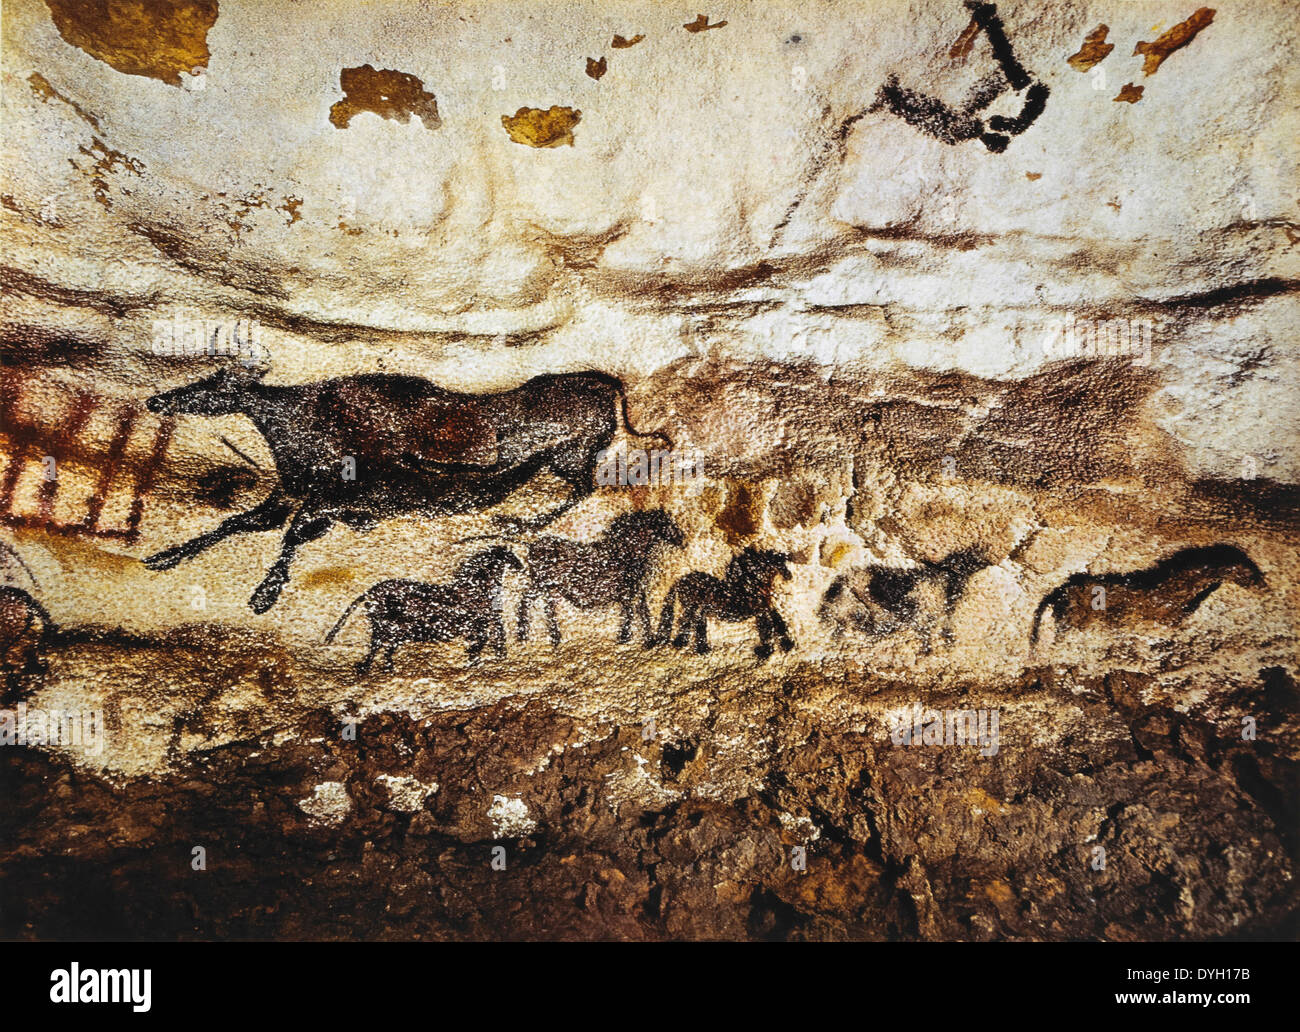 a summary and a history of the cave of lascaux in france 1940: lascaux cave paintings discovered archaeologists date the cave paintings at lascaux, france, to about 14000 bce illustration by jack unruh, national geographic.